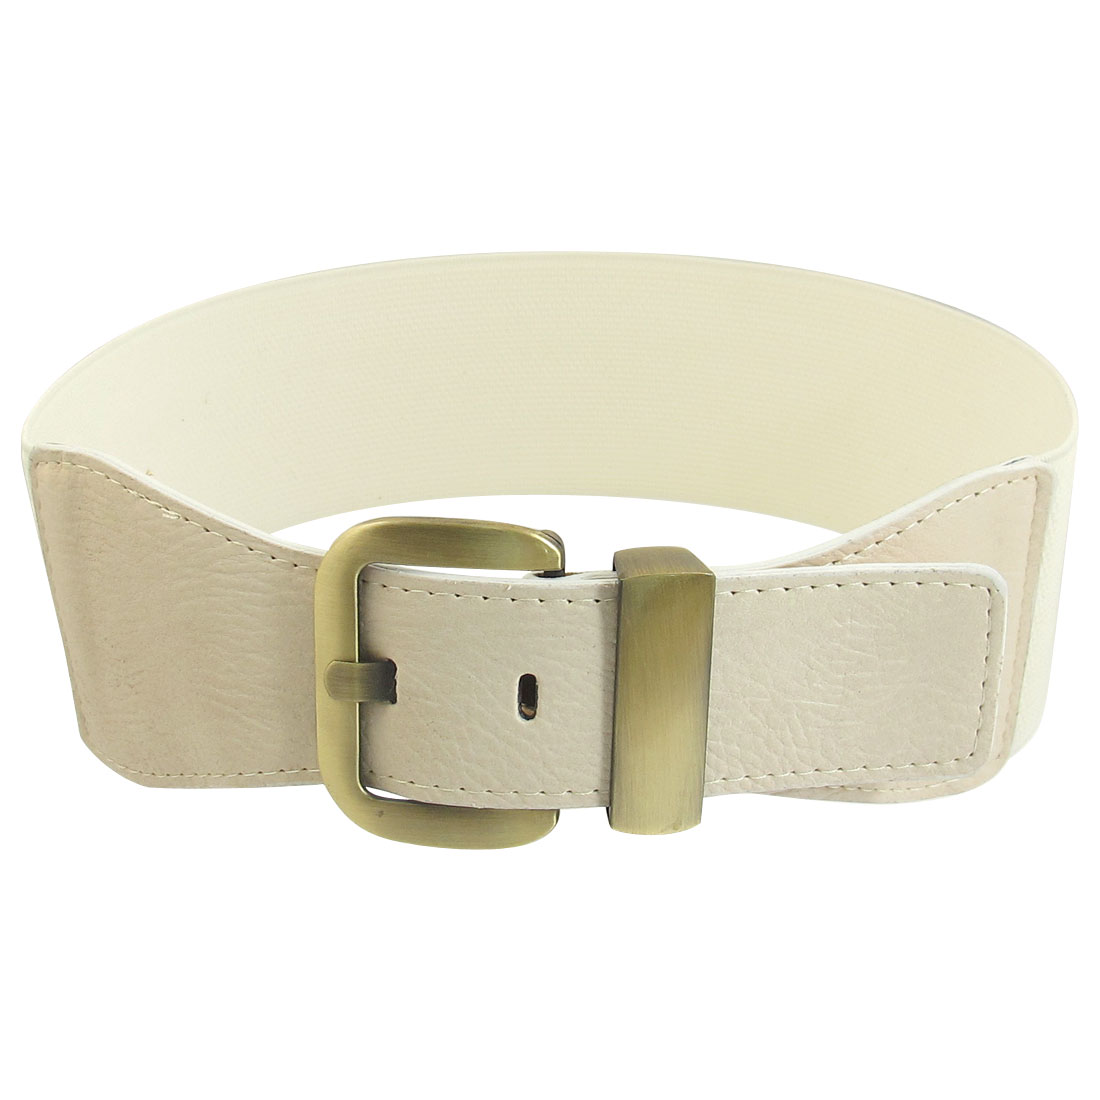 Metal Single Pin Buckle Adjustable Faux Leather Wide Elastic Belt Band White